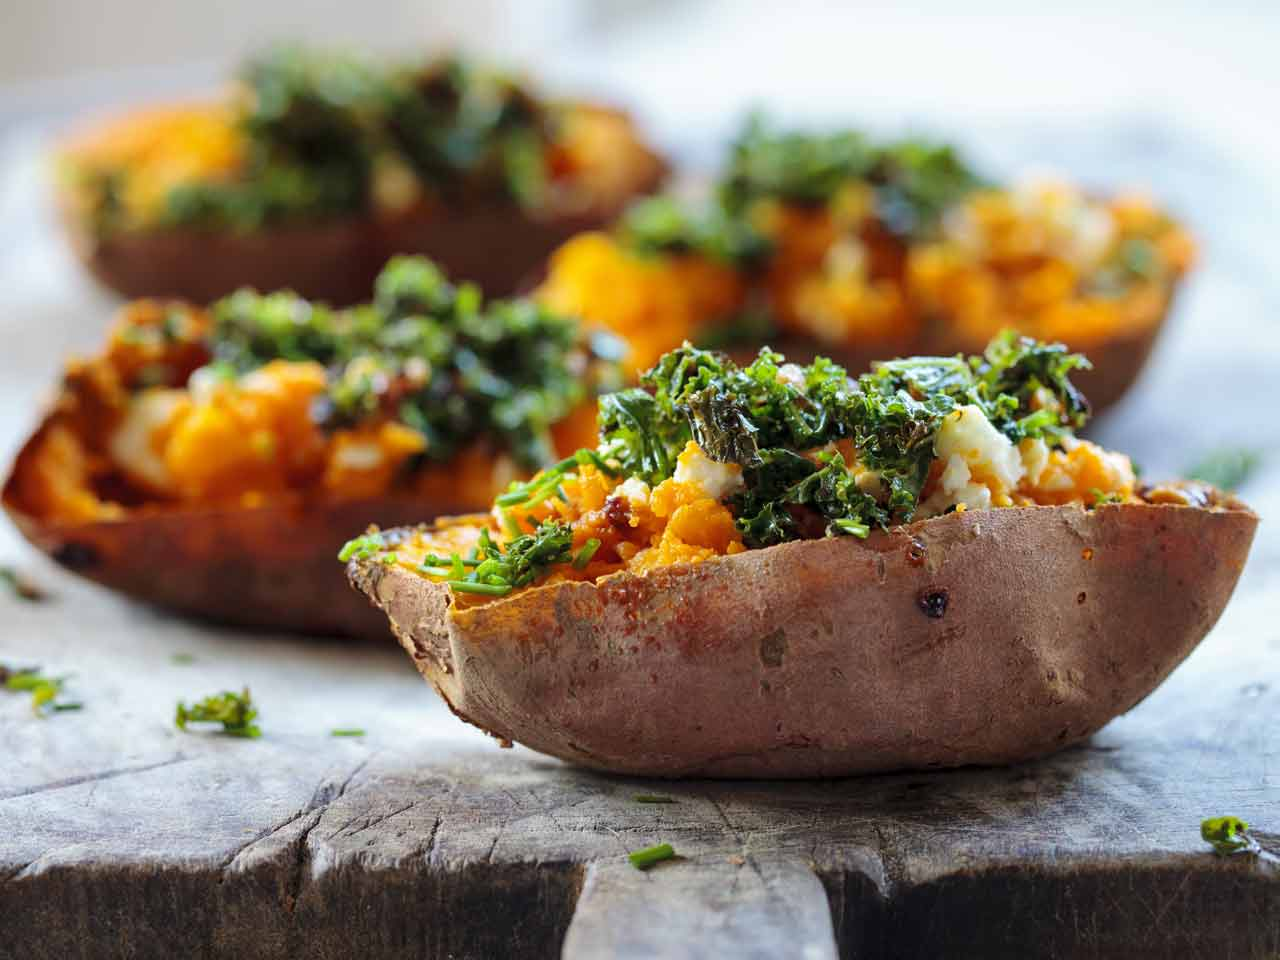 Baked sweet potato with crispy kale